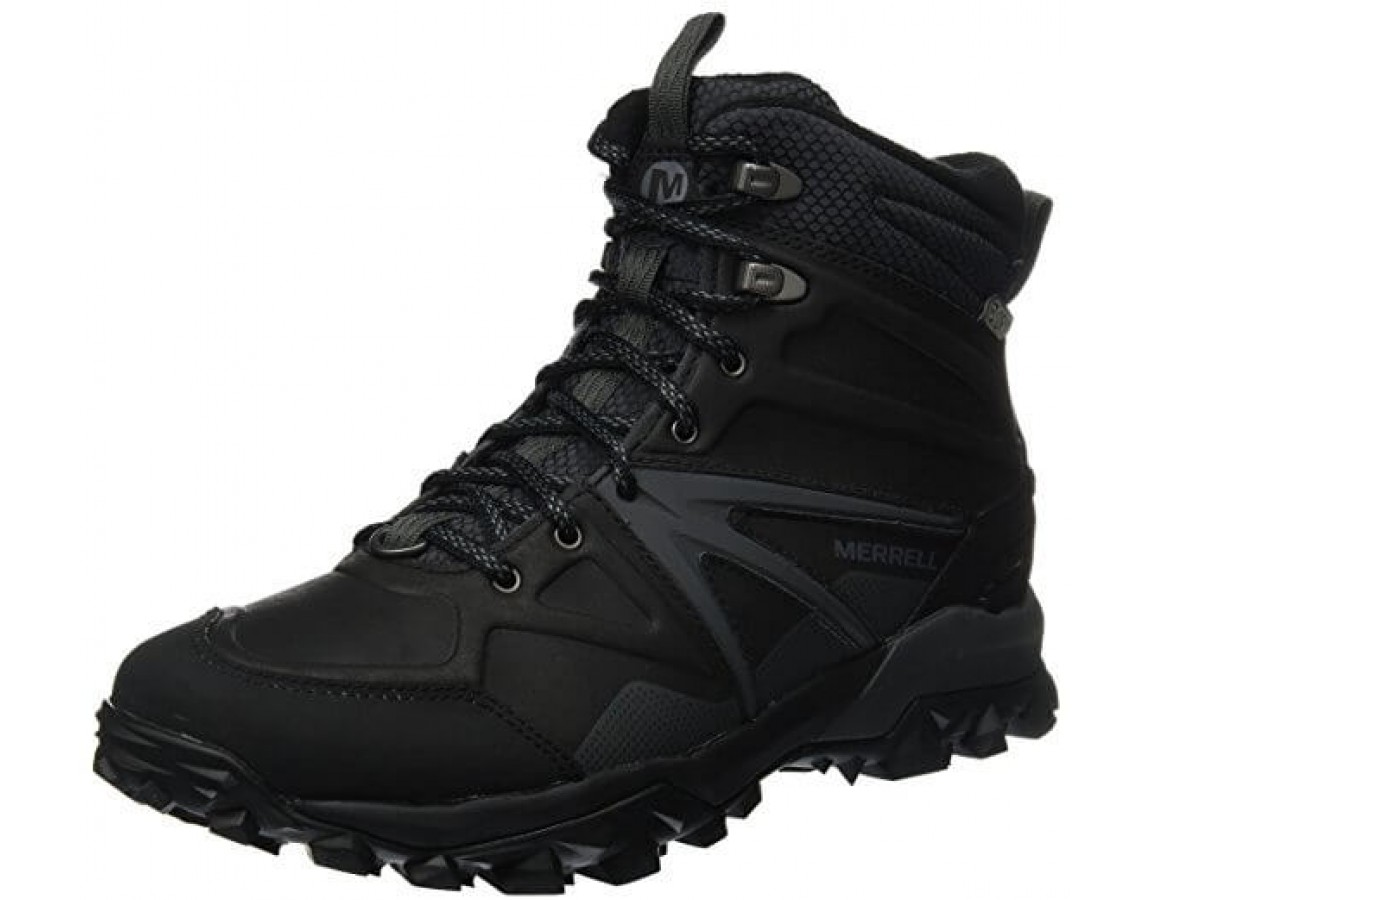 The Merrell Capra Glacial Ice angled perspective